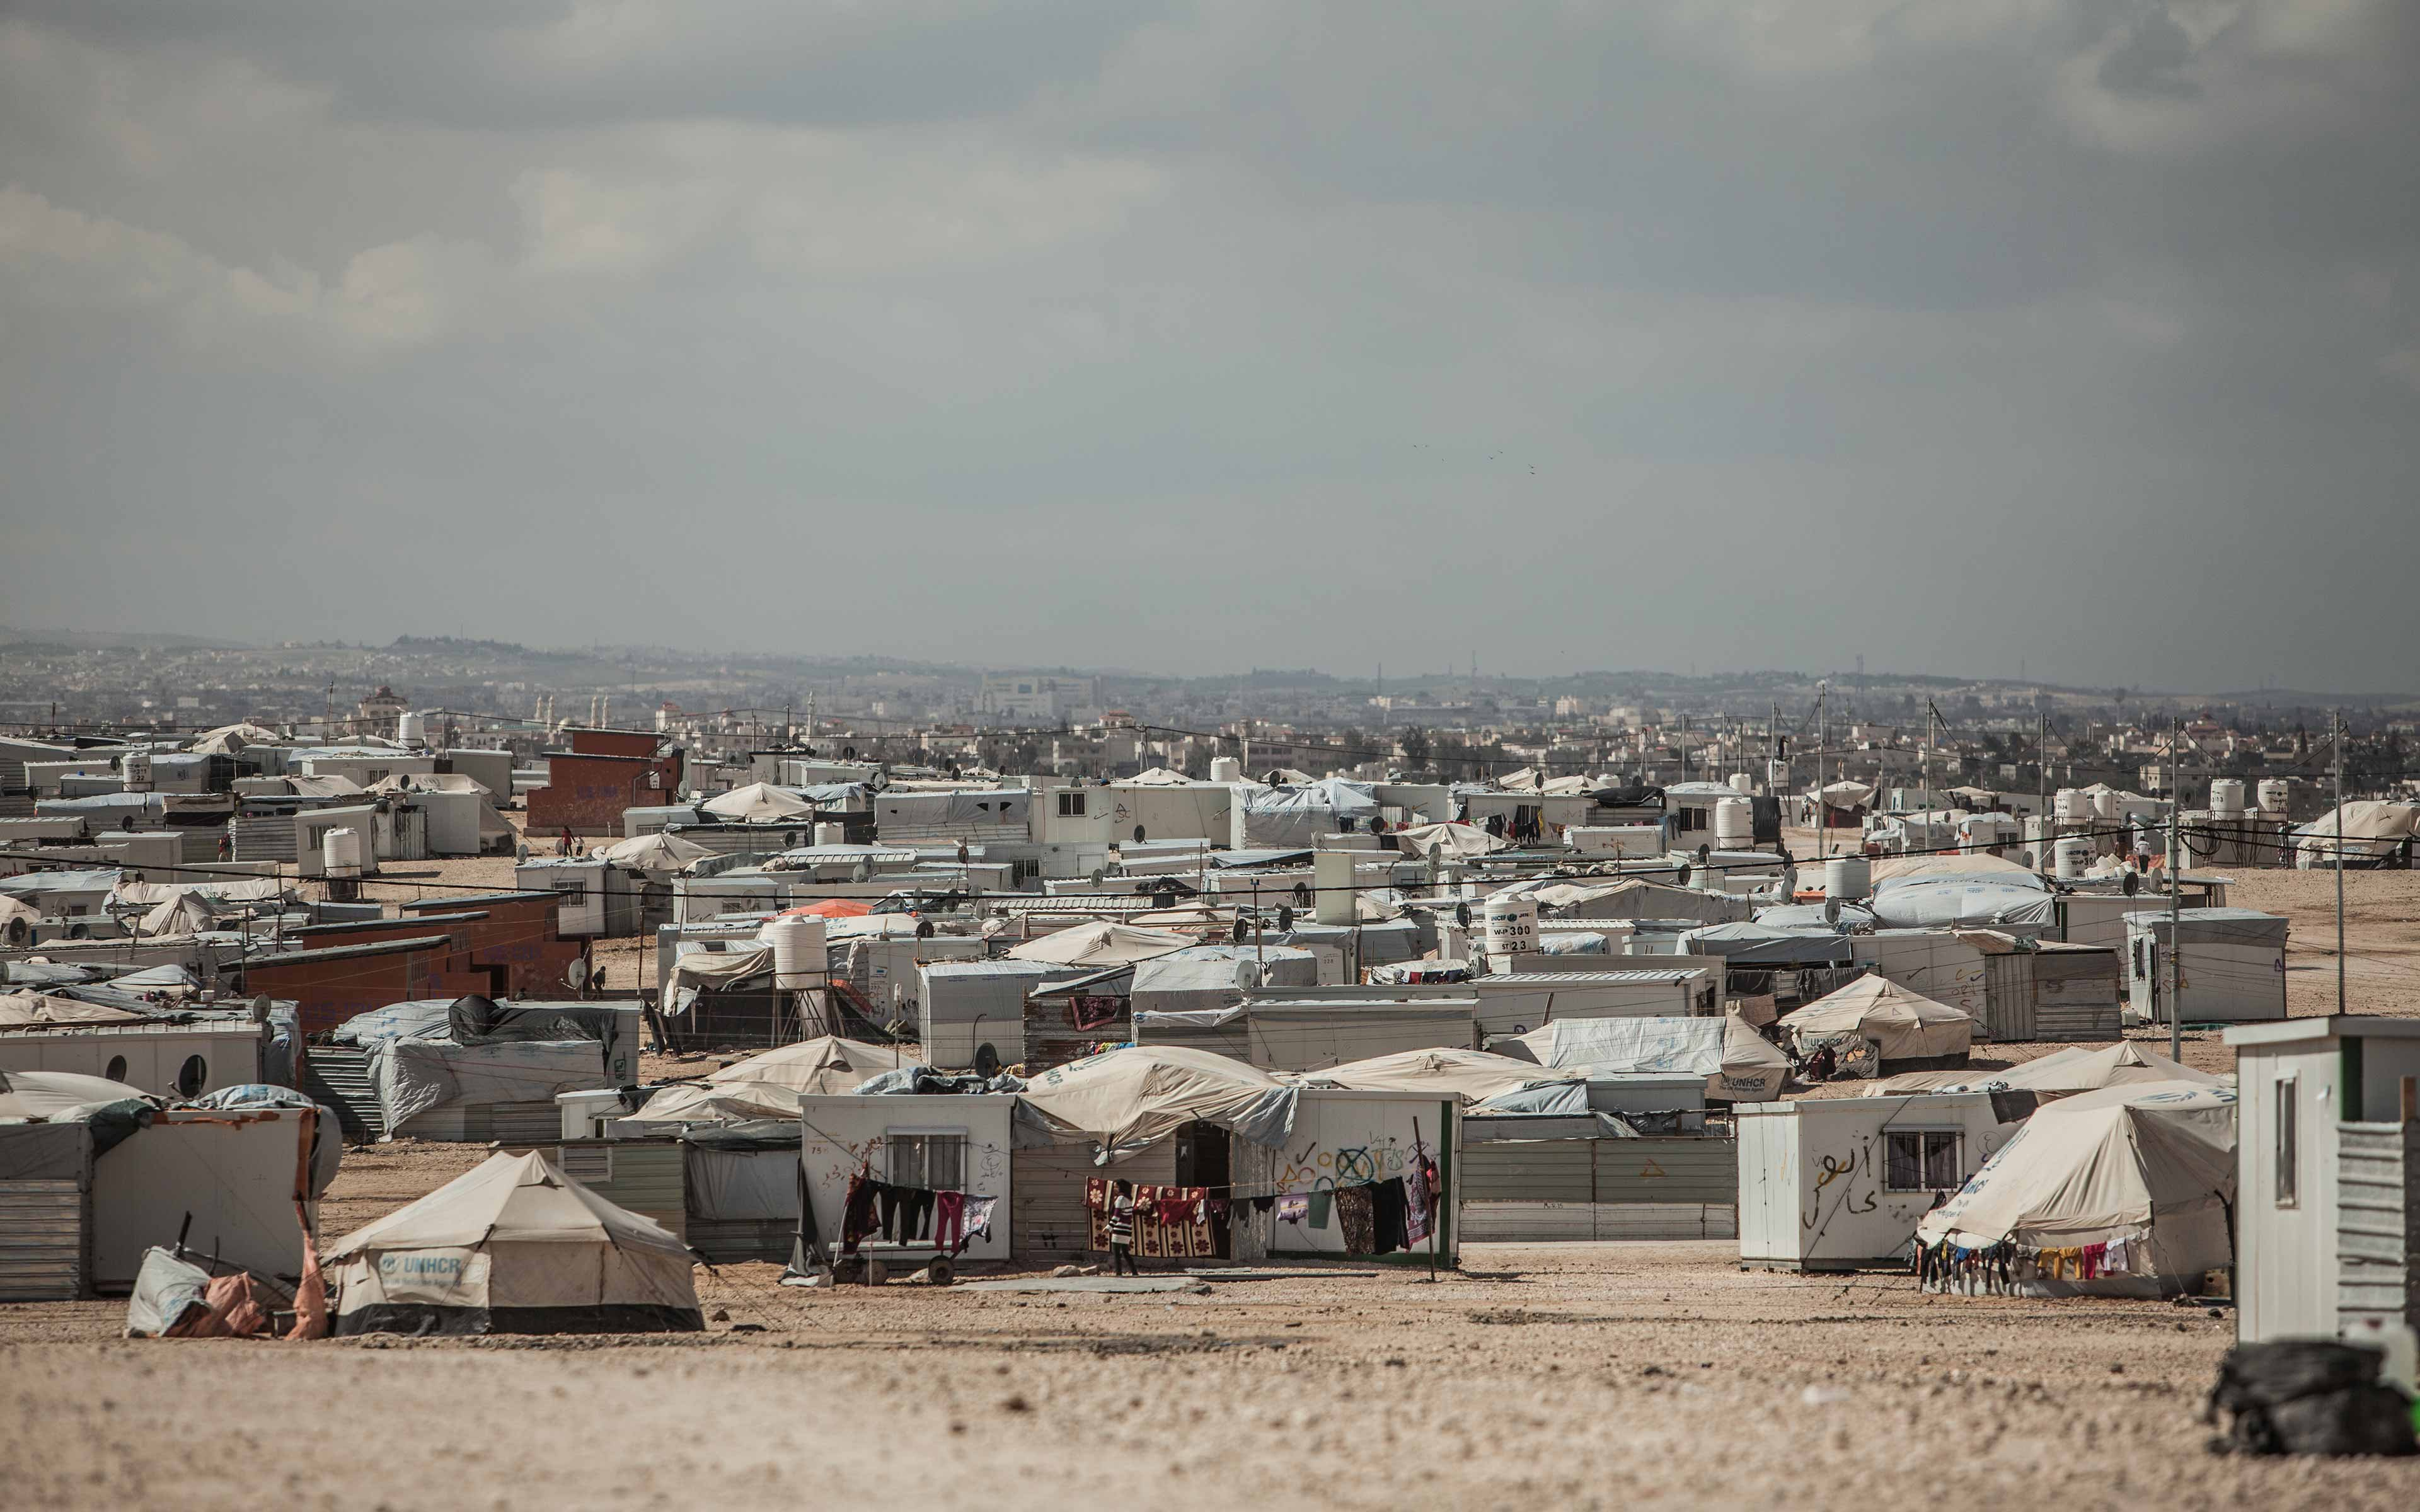 """The Zaatari refugee camp in Jordan is now sheltering tens of thousands of people from Syria, making it the fourth largest """"city"""" in the country.  It is a kind of no man's land, says photographer Pablo Tosco. A place of """"limbo where people are trying to process the traumatic experience of war."""""""